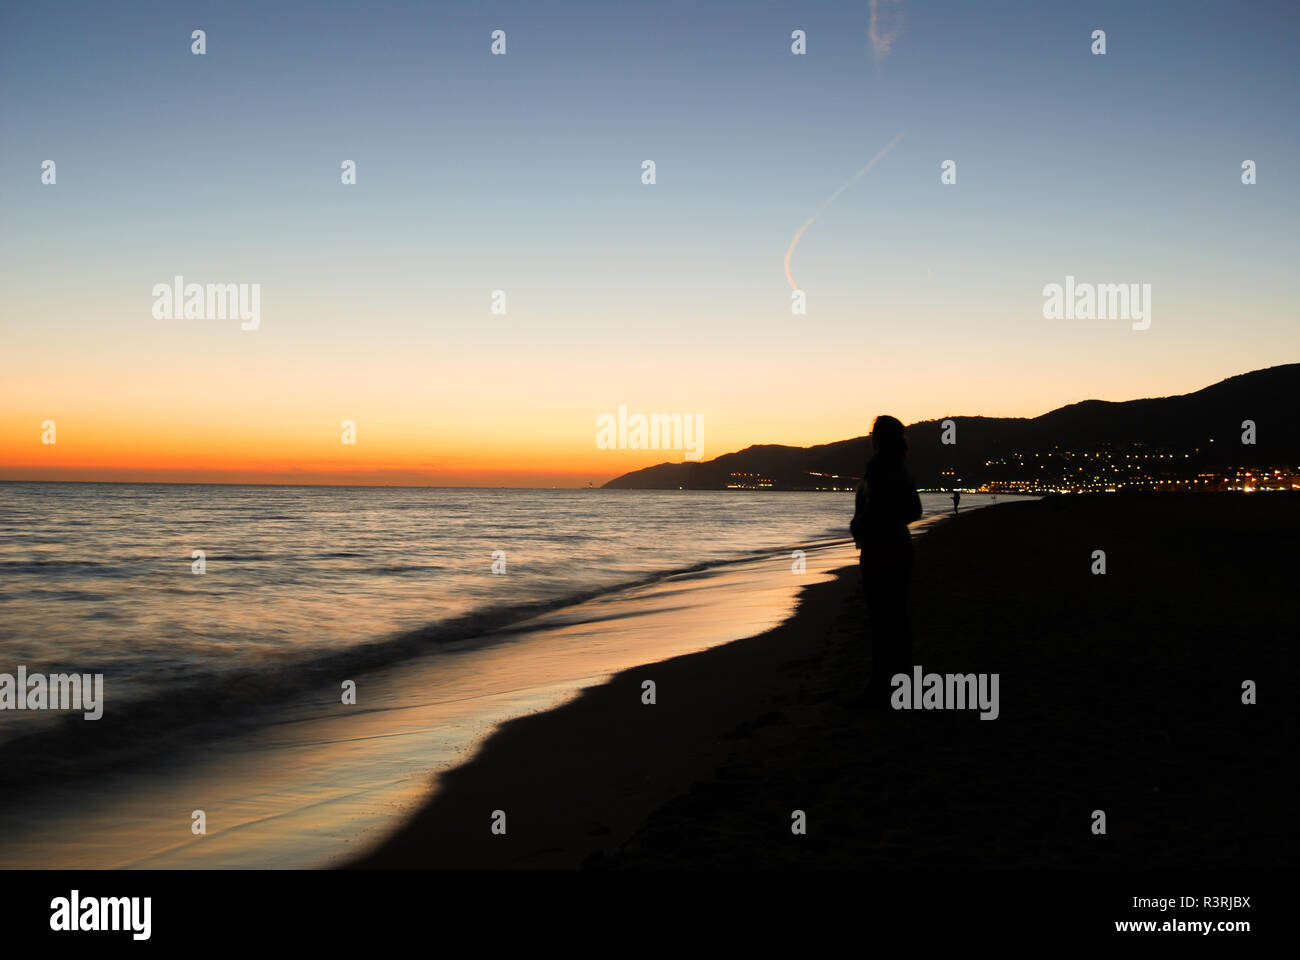 Photograph in beaches of Barcelona at dusk, with silhouette of woman on the shore. - Stock Image